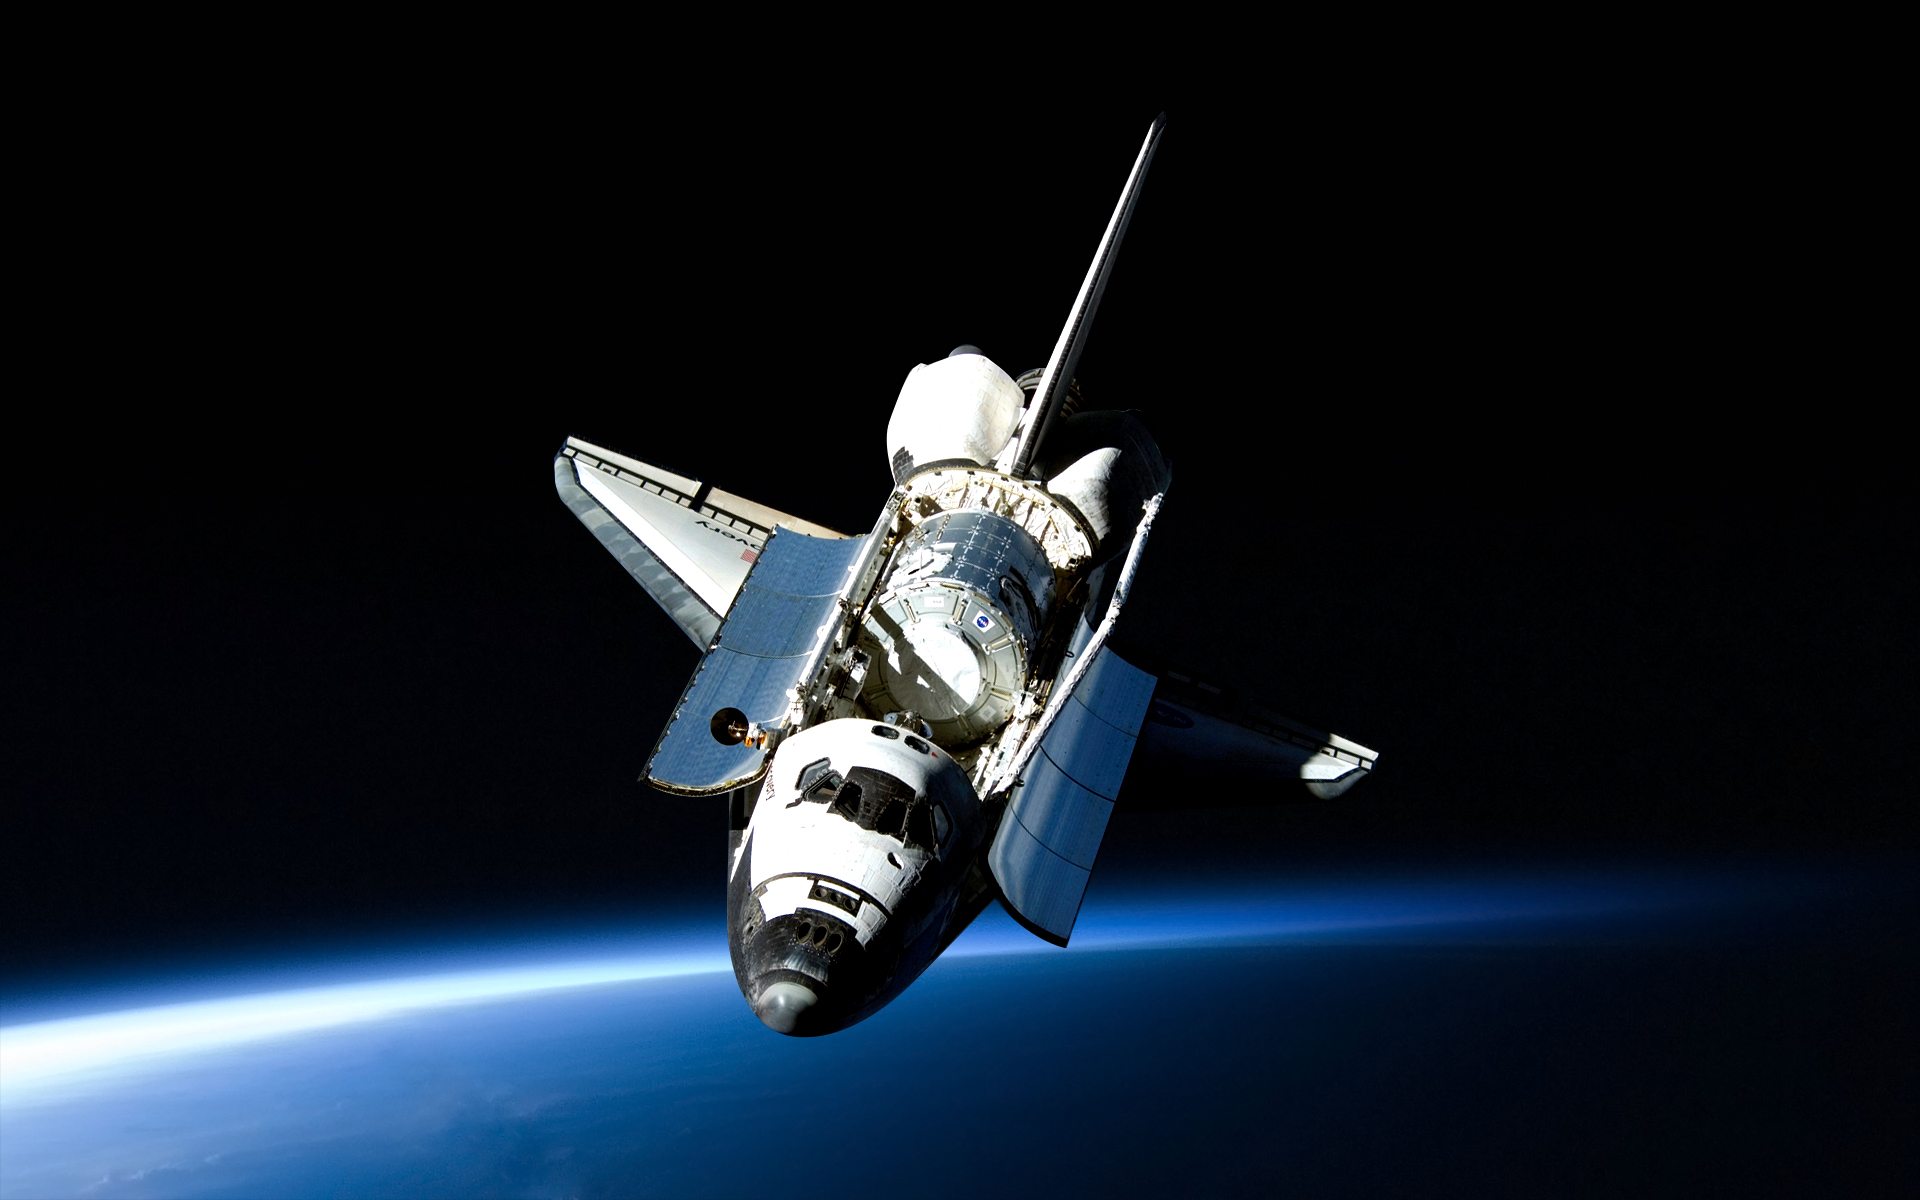 hd space shuttle in space-#main